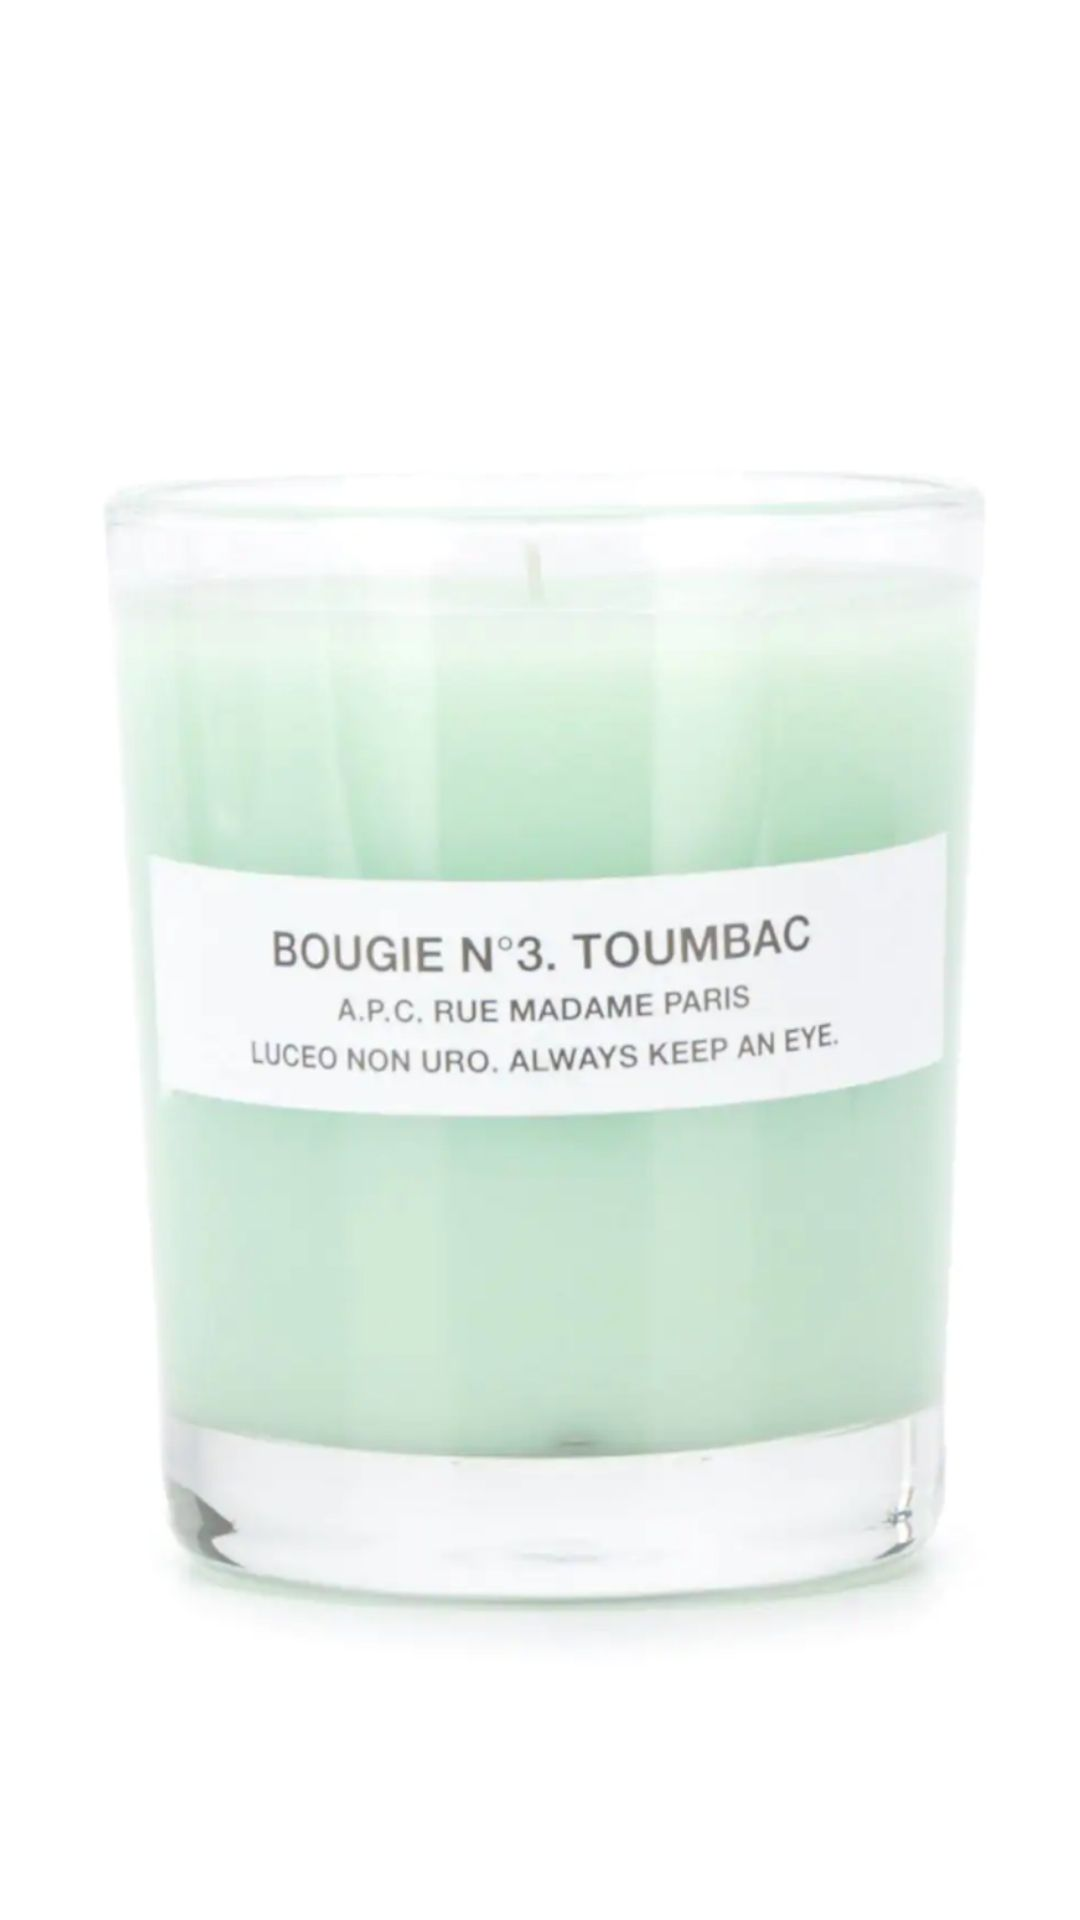 menswear, style, home decor, candles, scents, WFH, esquire, 2020